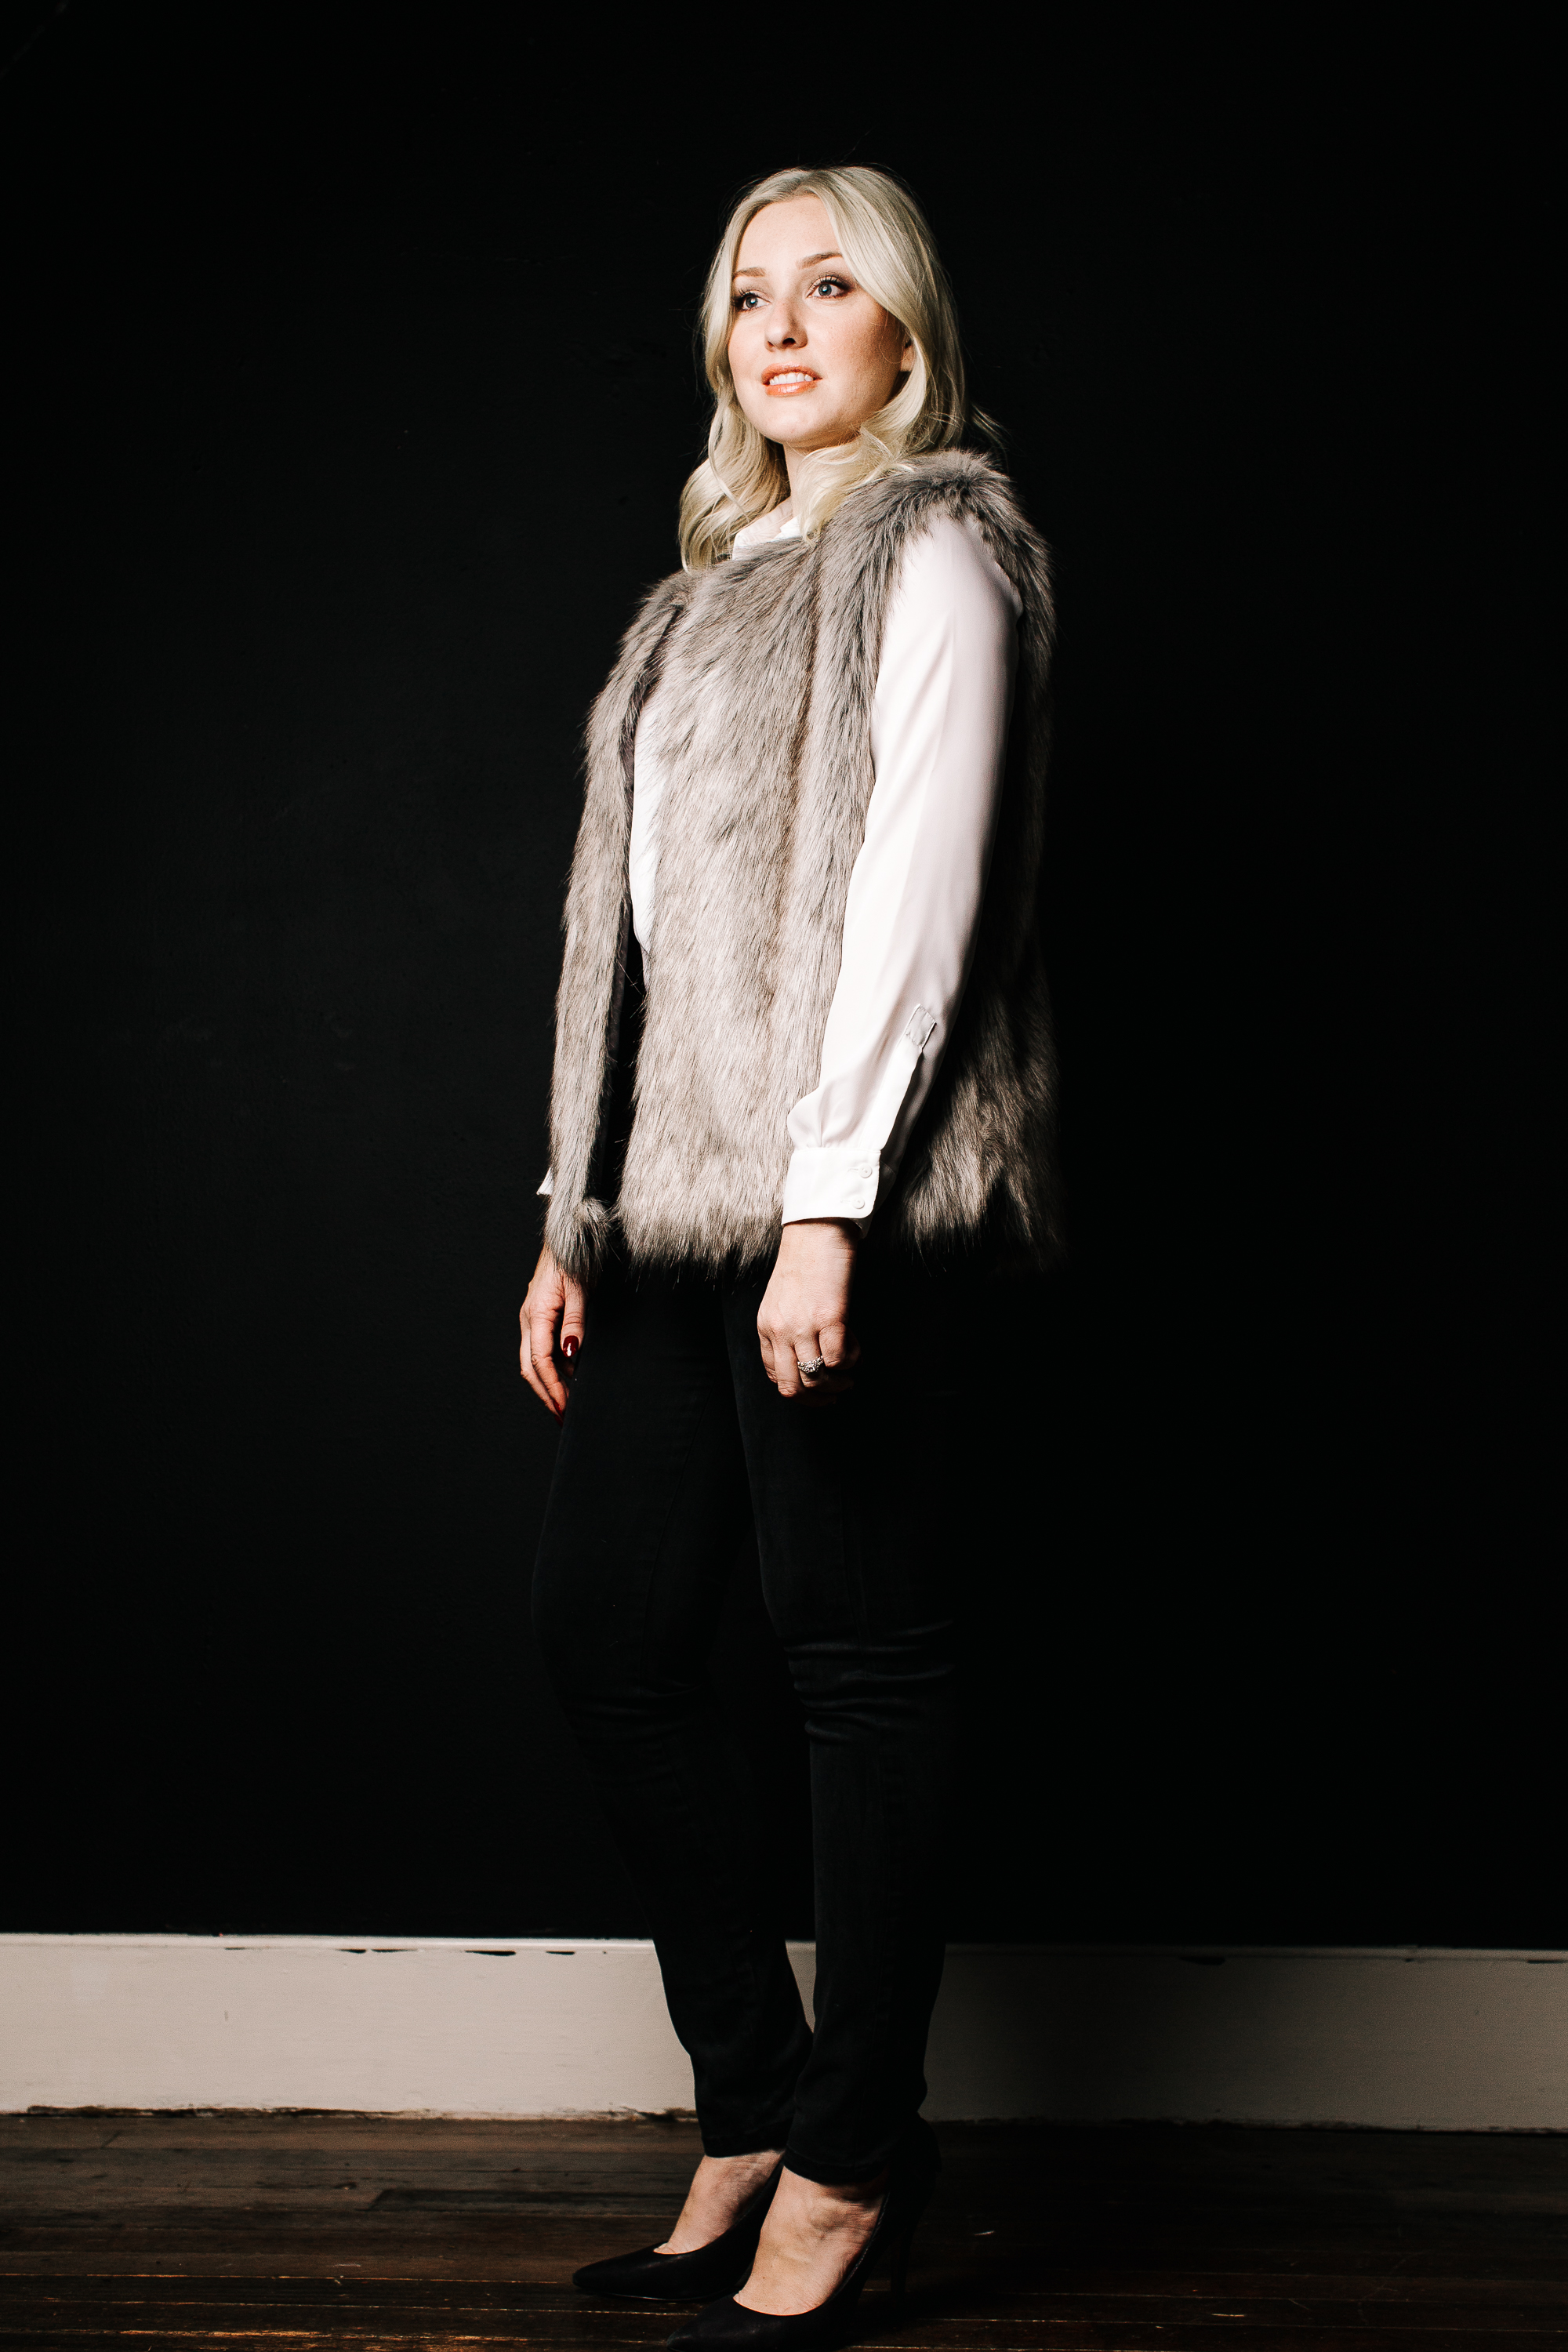 white-blouse-and-fur-vest